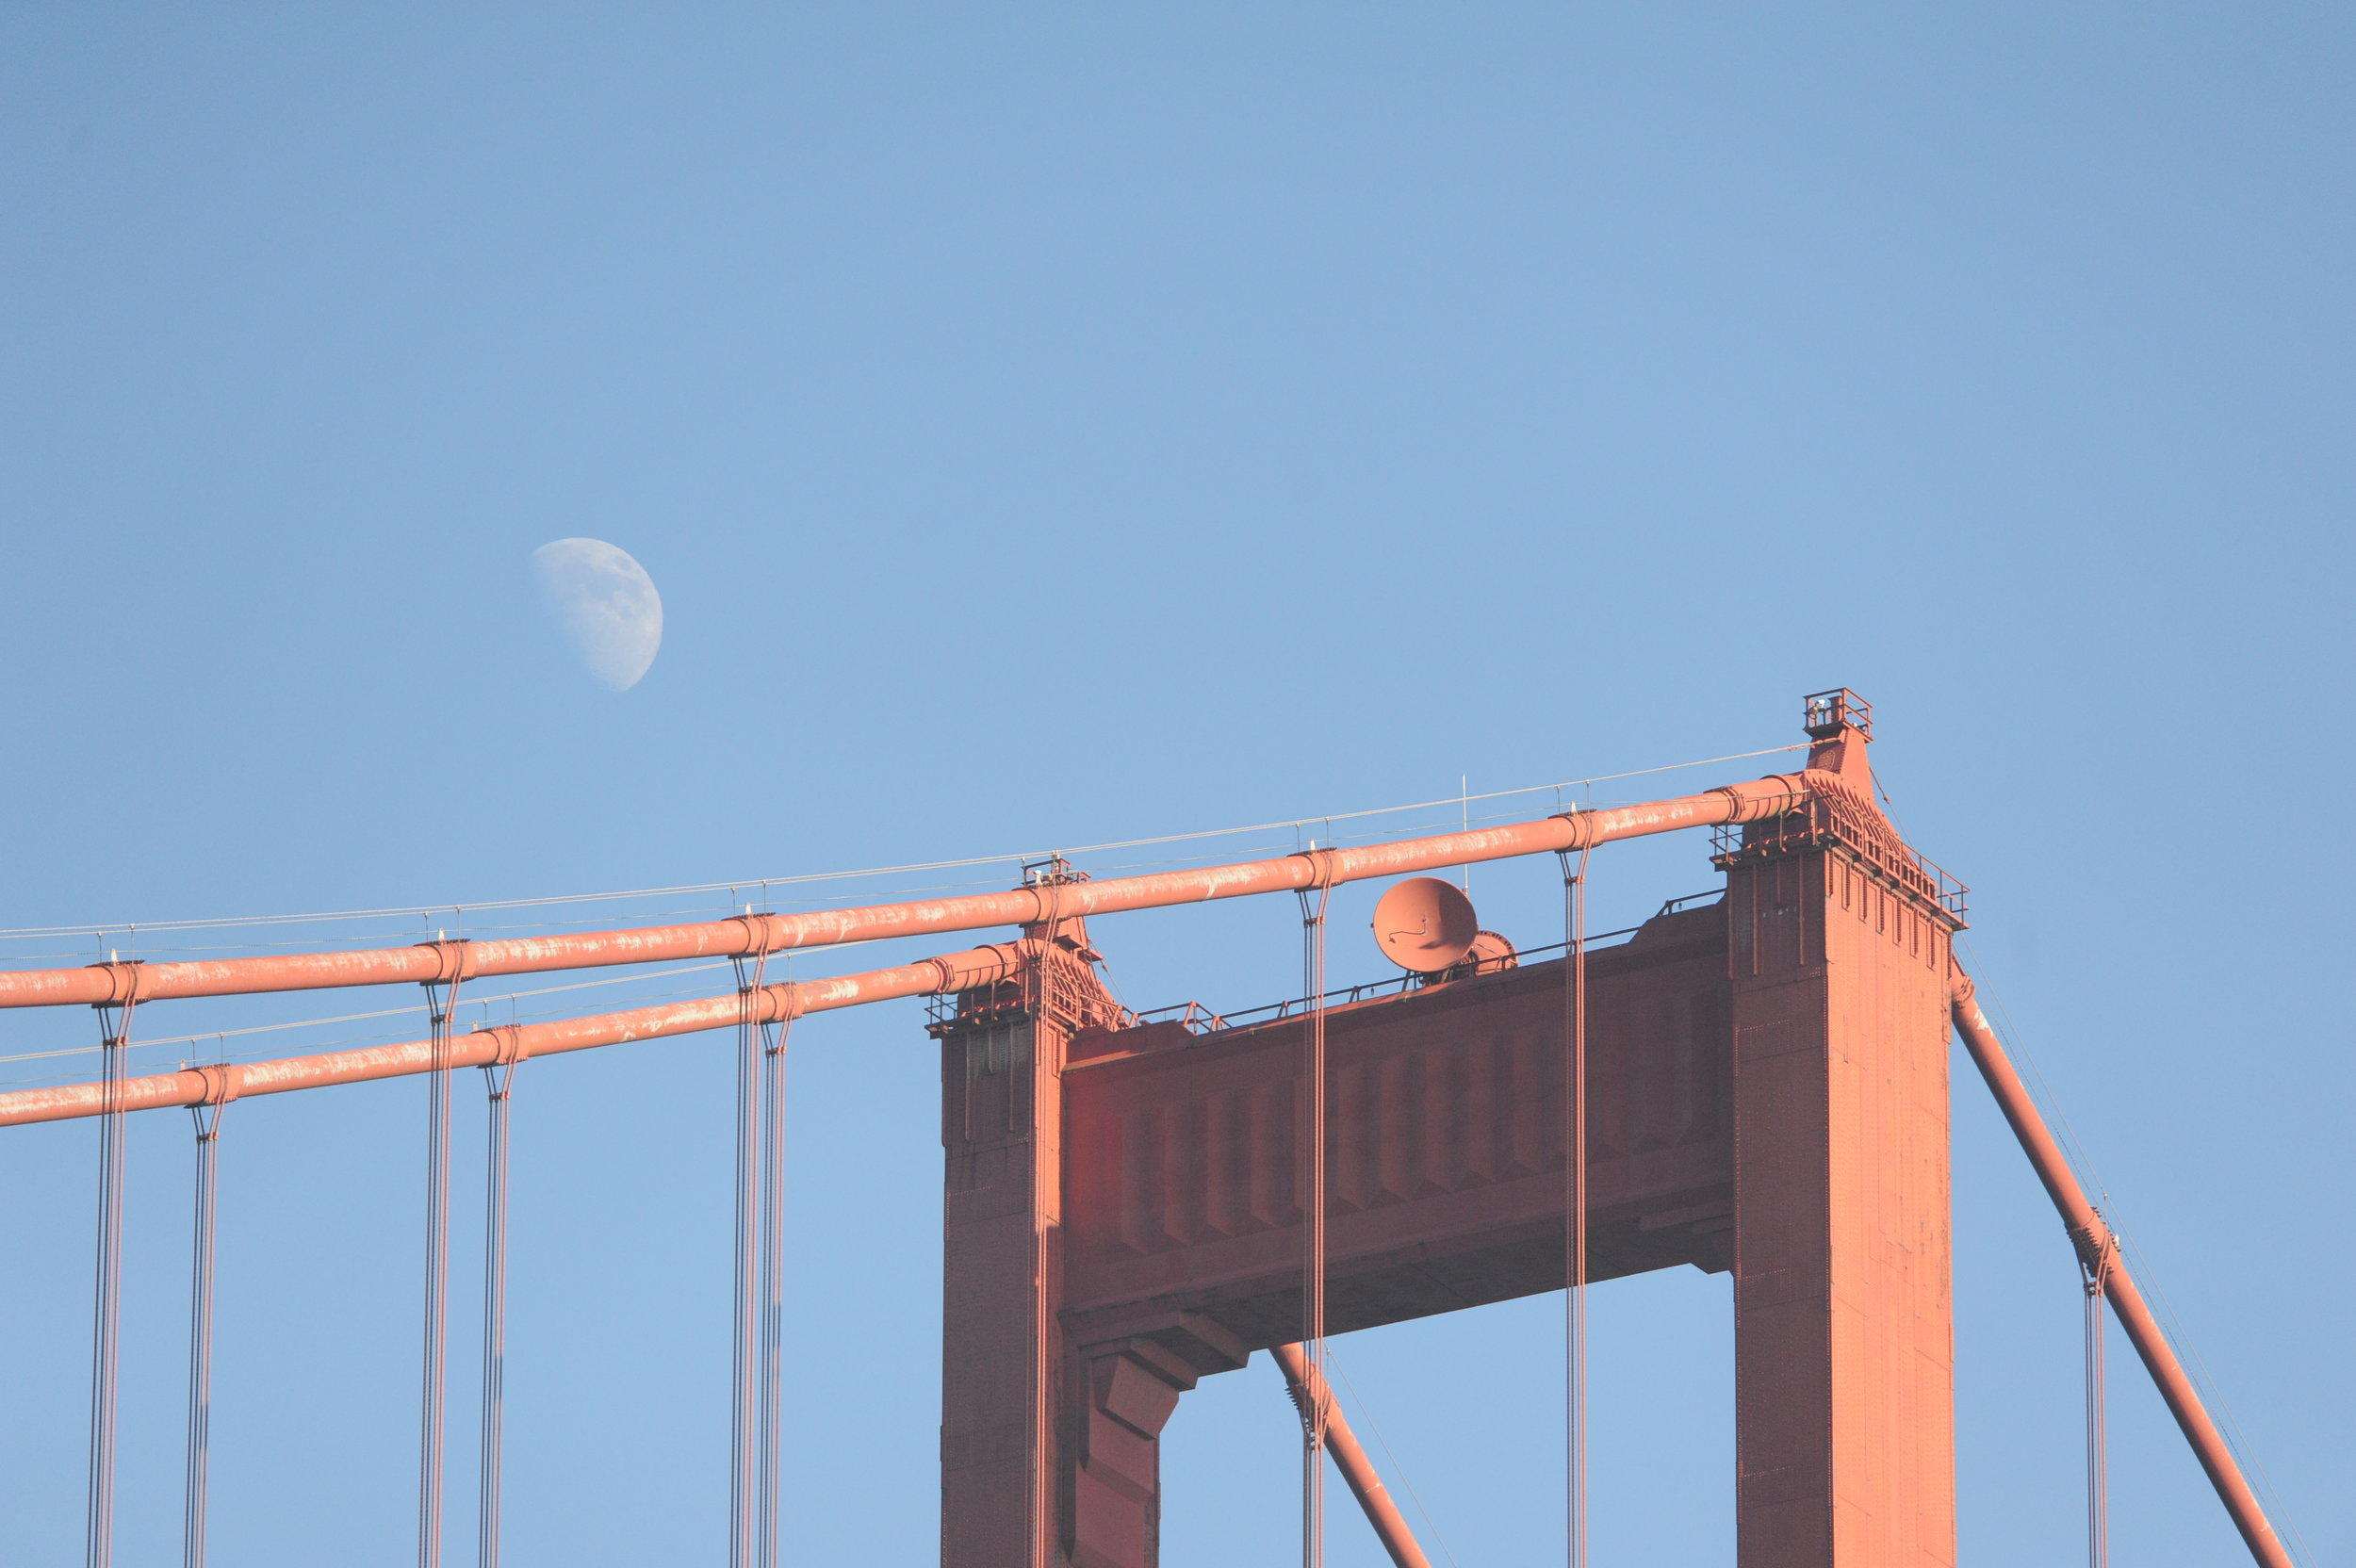 The Golden Gate Bridge and the moon.